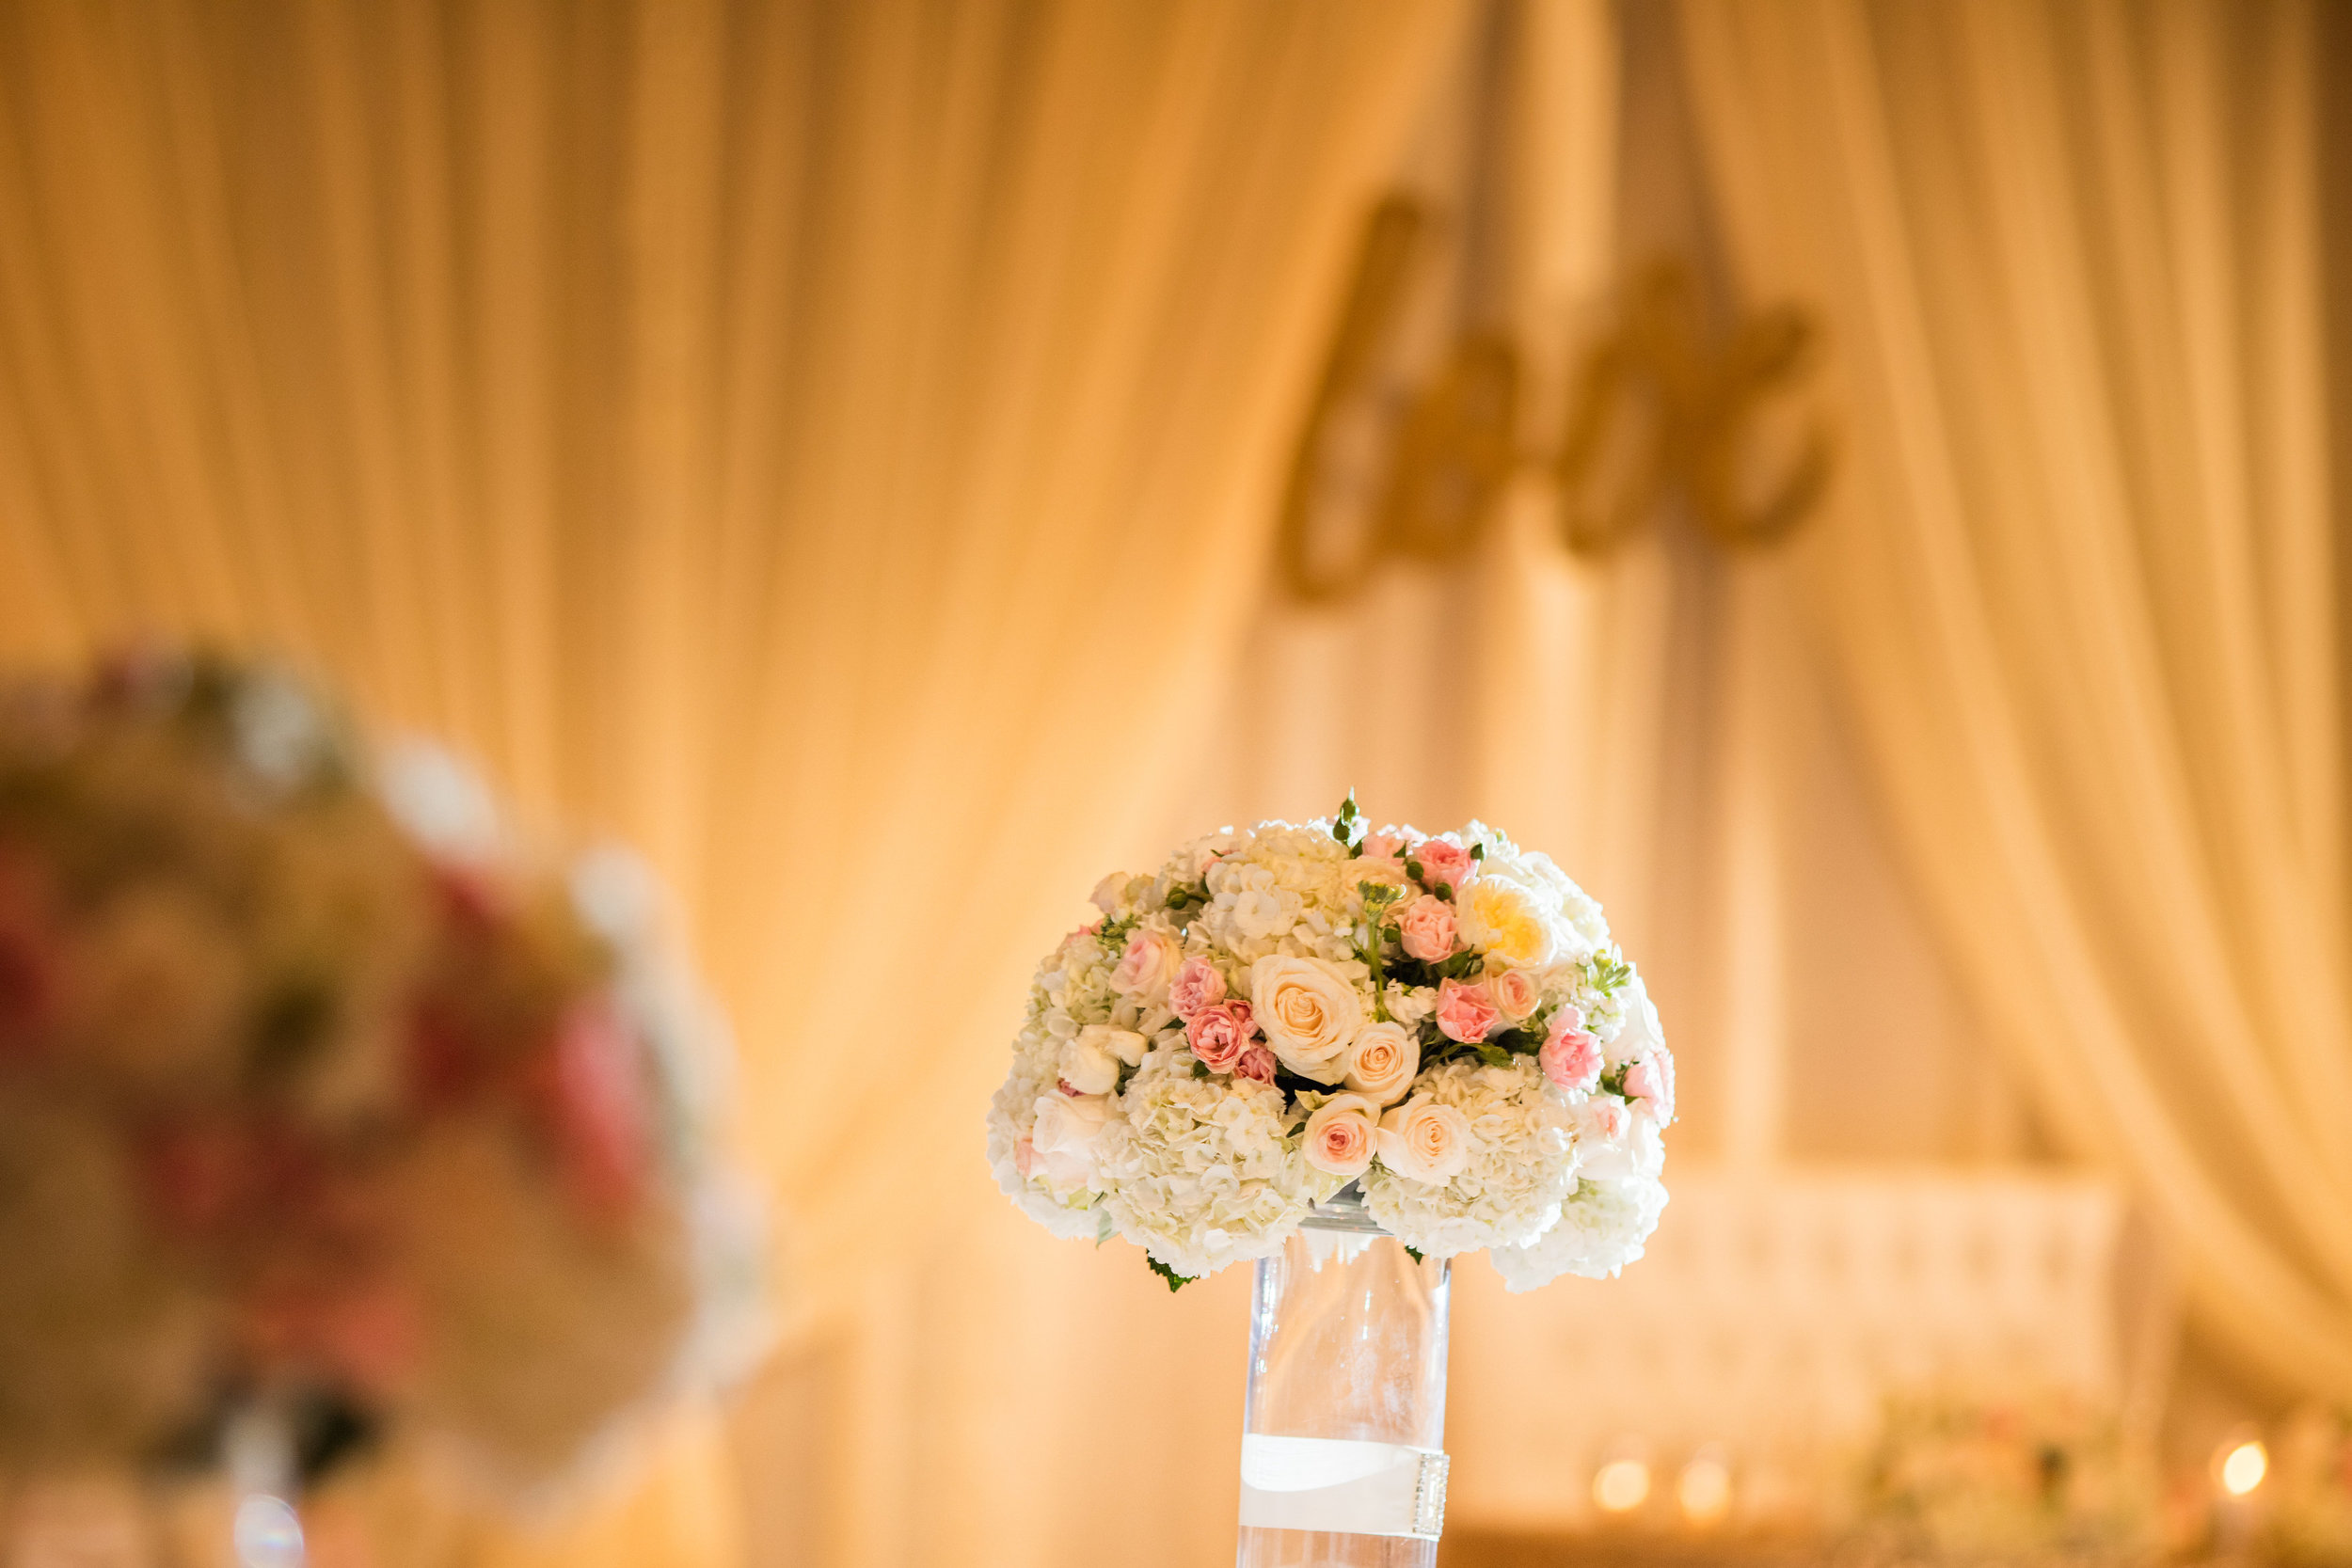 Hyatt-Regency-Waikiki-Wedding-24.jpg